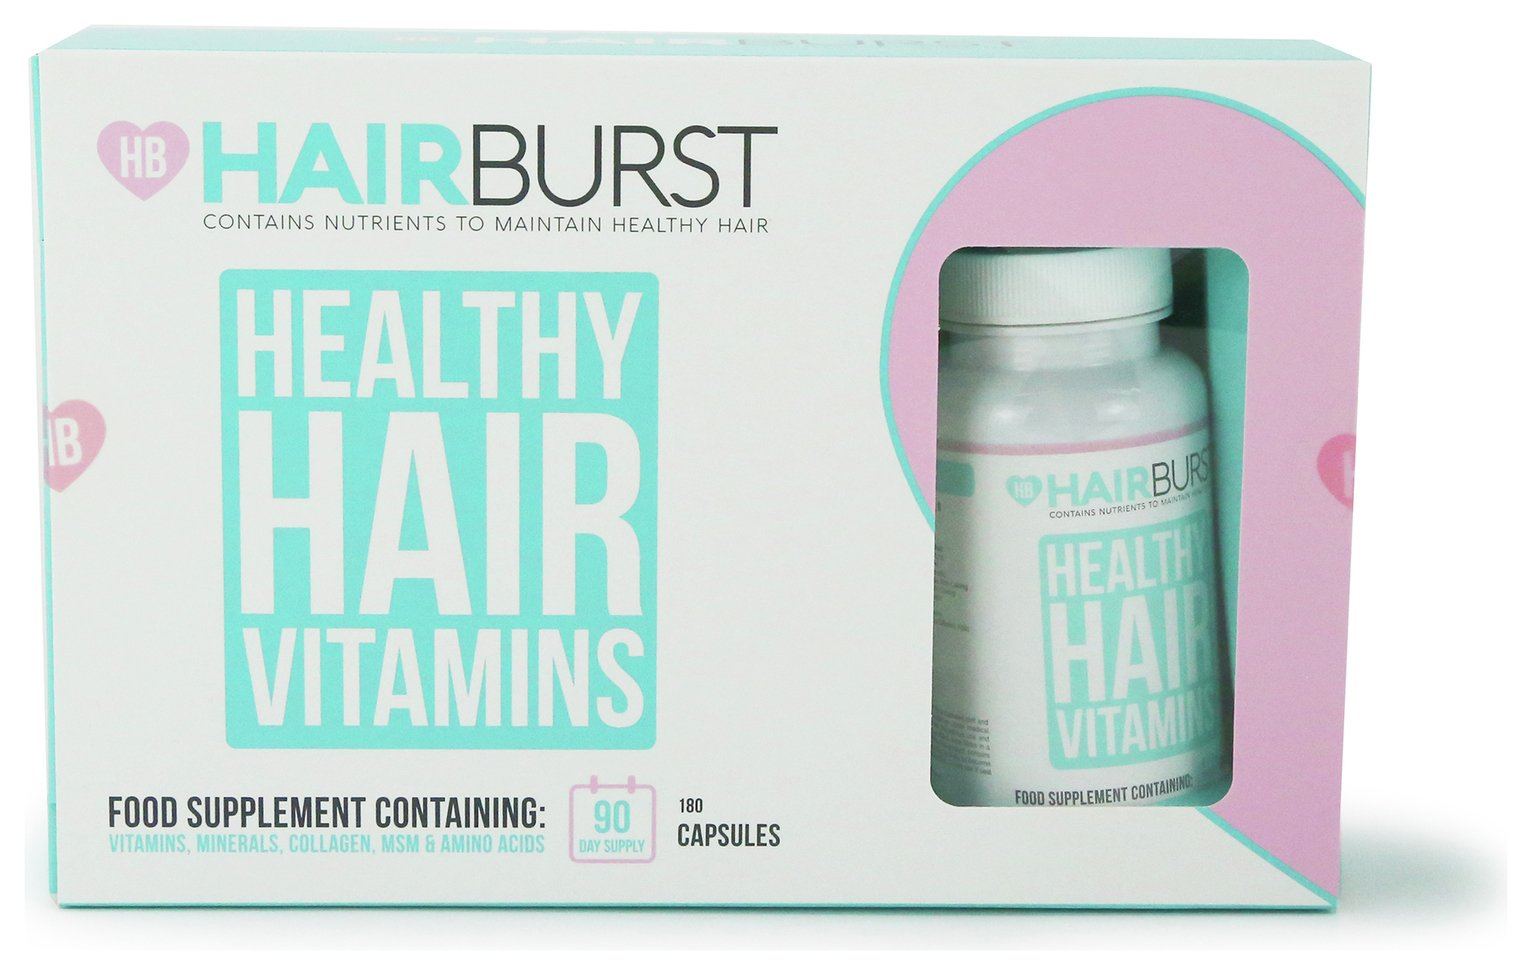 Hairburst 3 Months Supply Original Hair Vitiamns